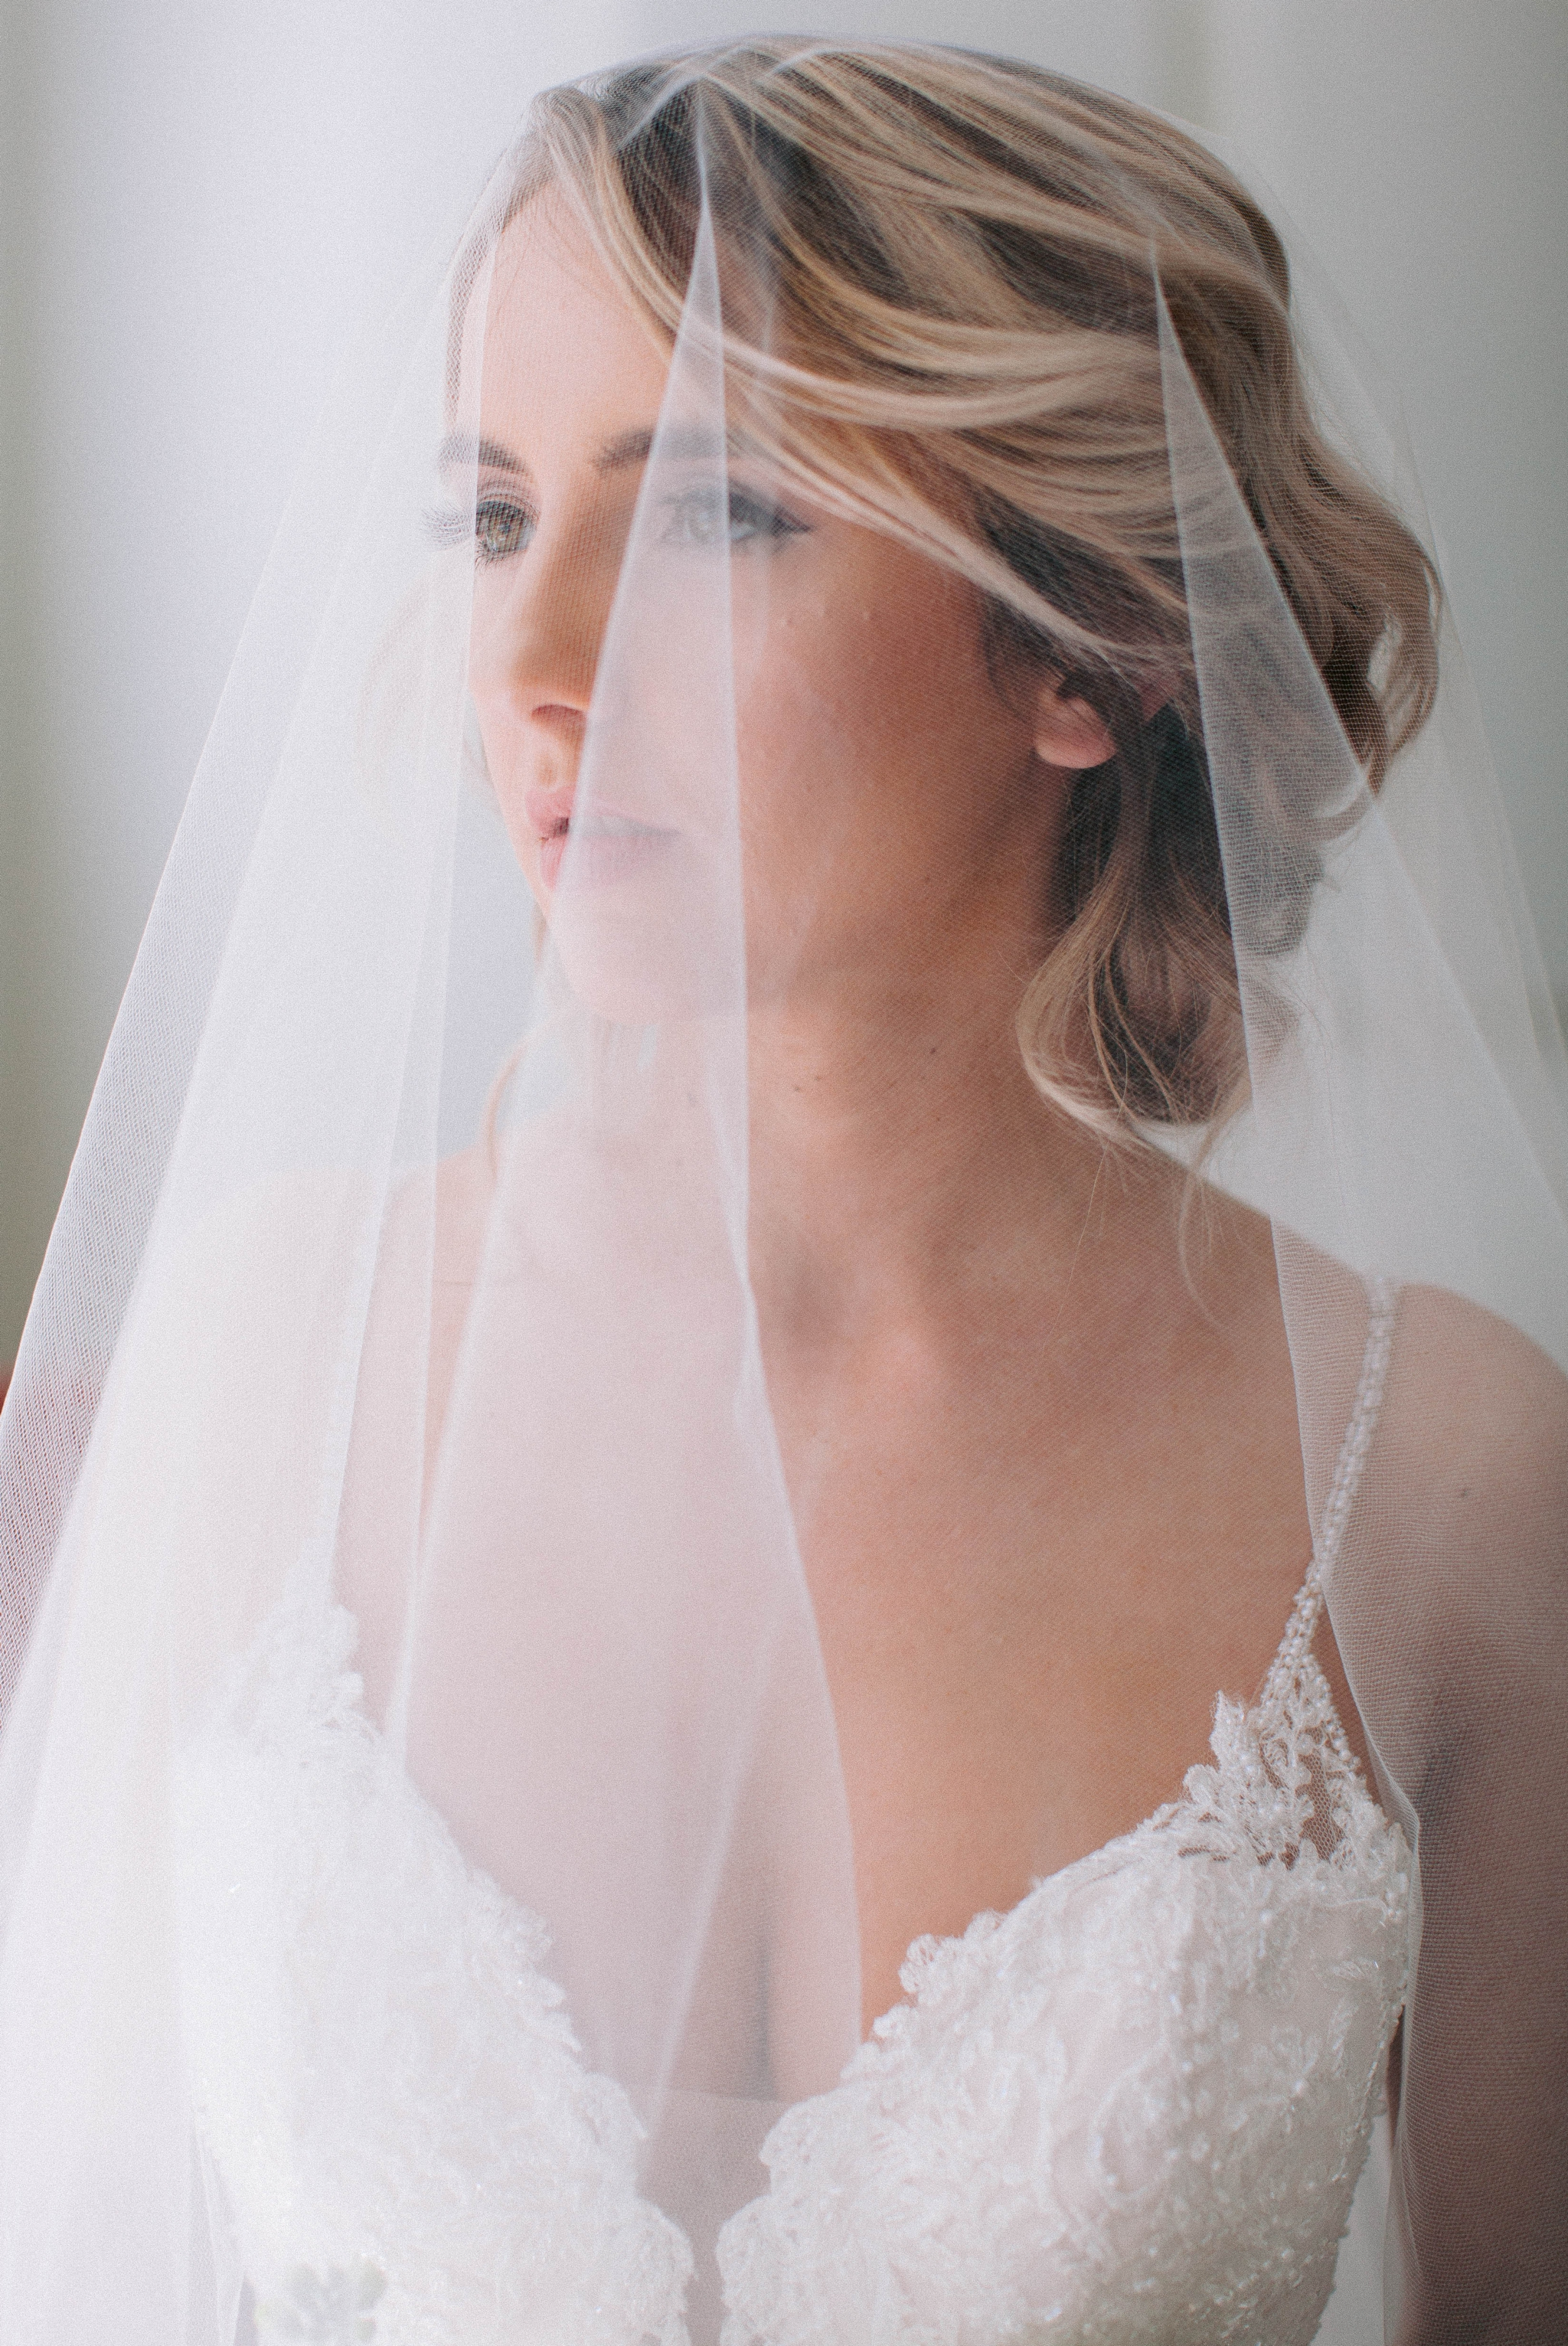 Indoor Natural Light Bridal Portraits by a window with a white backdrop - classic bride with soft drop veil over her face - wedding gown by Stella York - Honolulu, Oahu, Hawaii Wedding Photographer